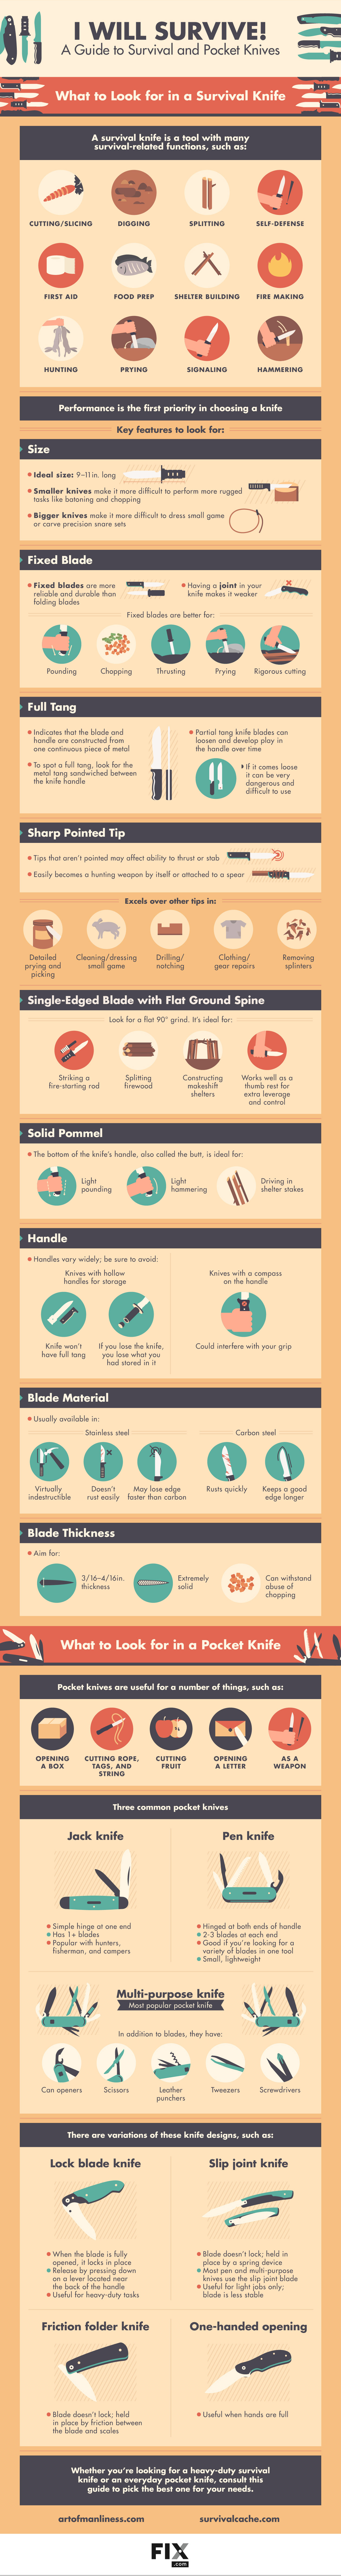 guide-to-survival-and-pocket-knives